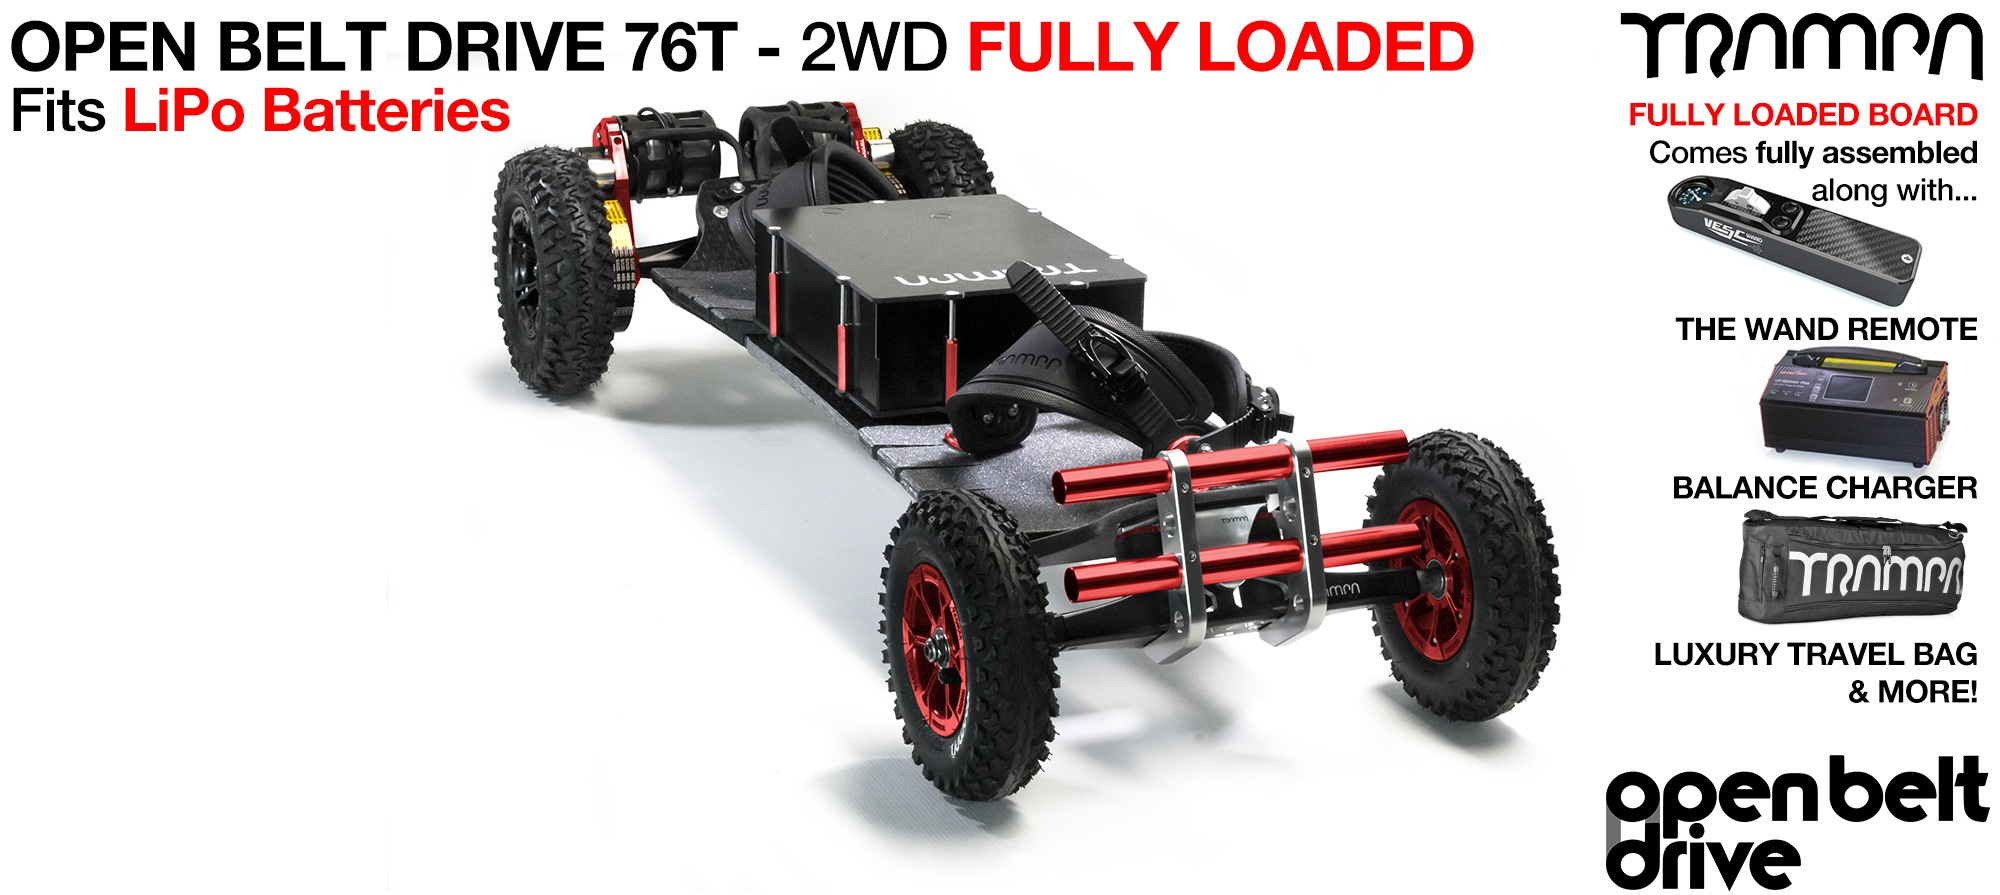 2WD OPEN BELT DRIVE Electric Mountainboard with MONSTER Box with 76t Pulley & Twin Motor - LOADED Li-Po